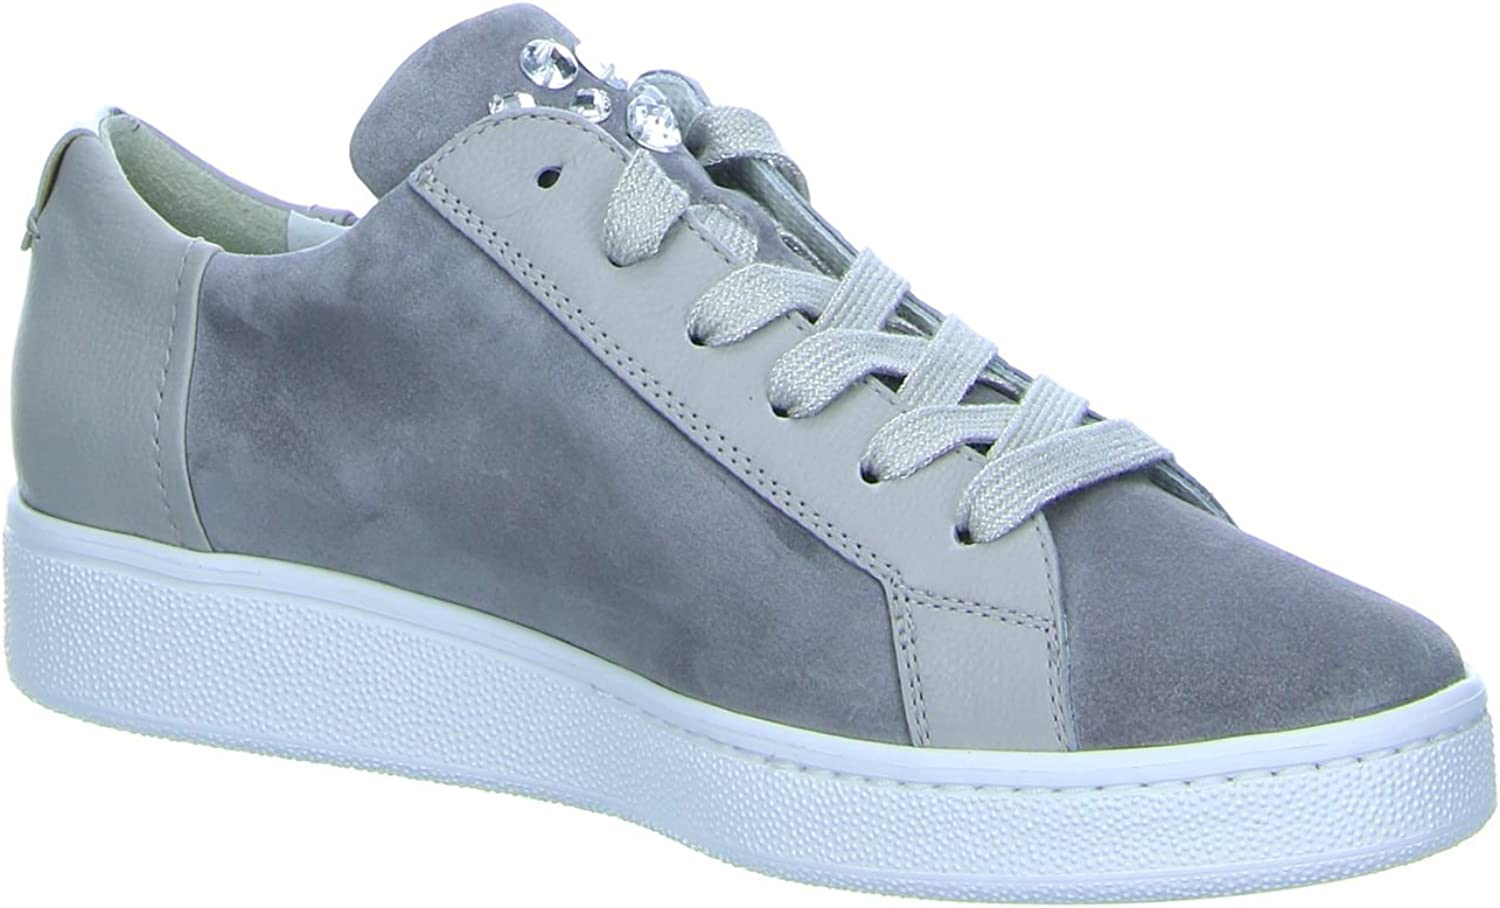 Paul Green Damen Cracked Met/Sz Saphir/Blau Sneaker Grau